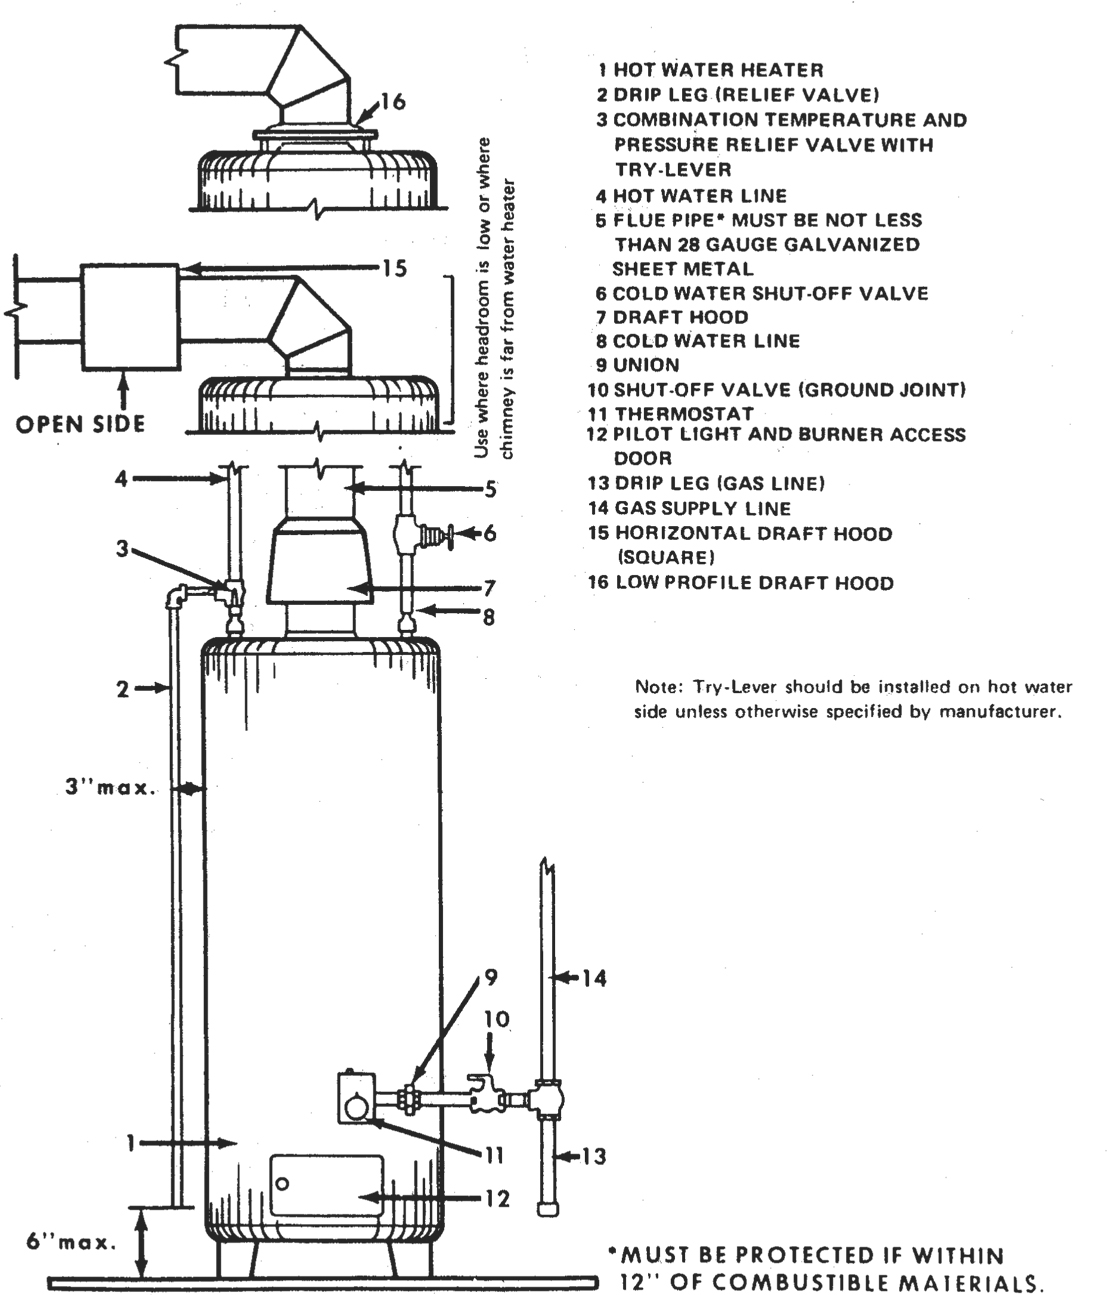 plate heat exchanger maintenance manual